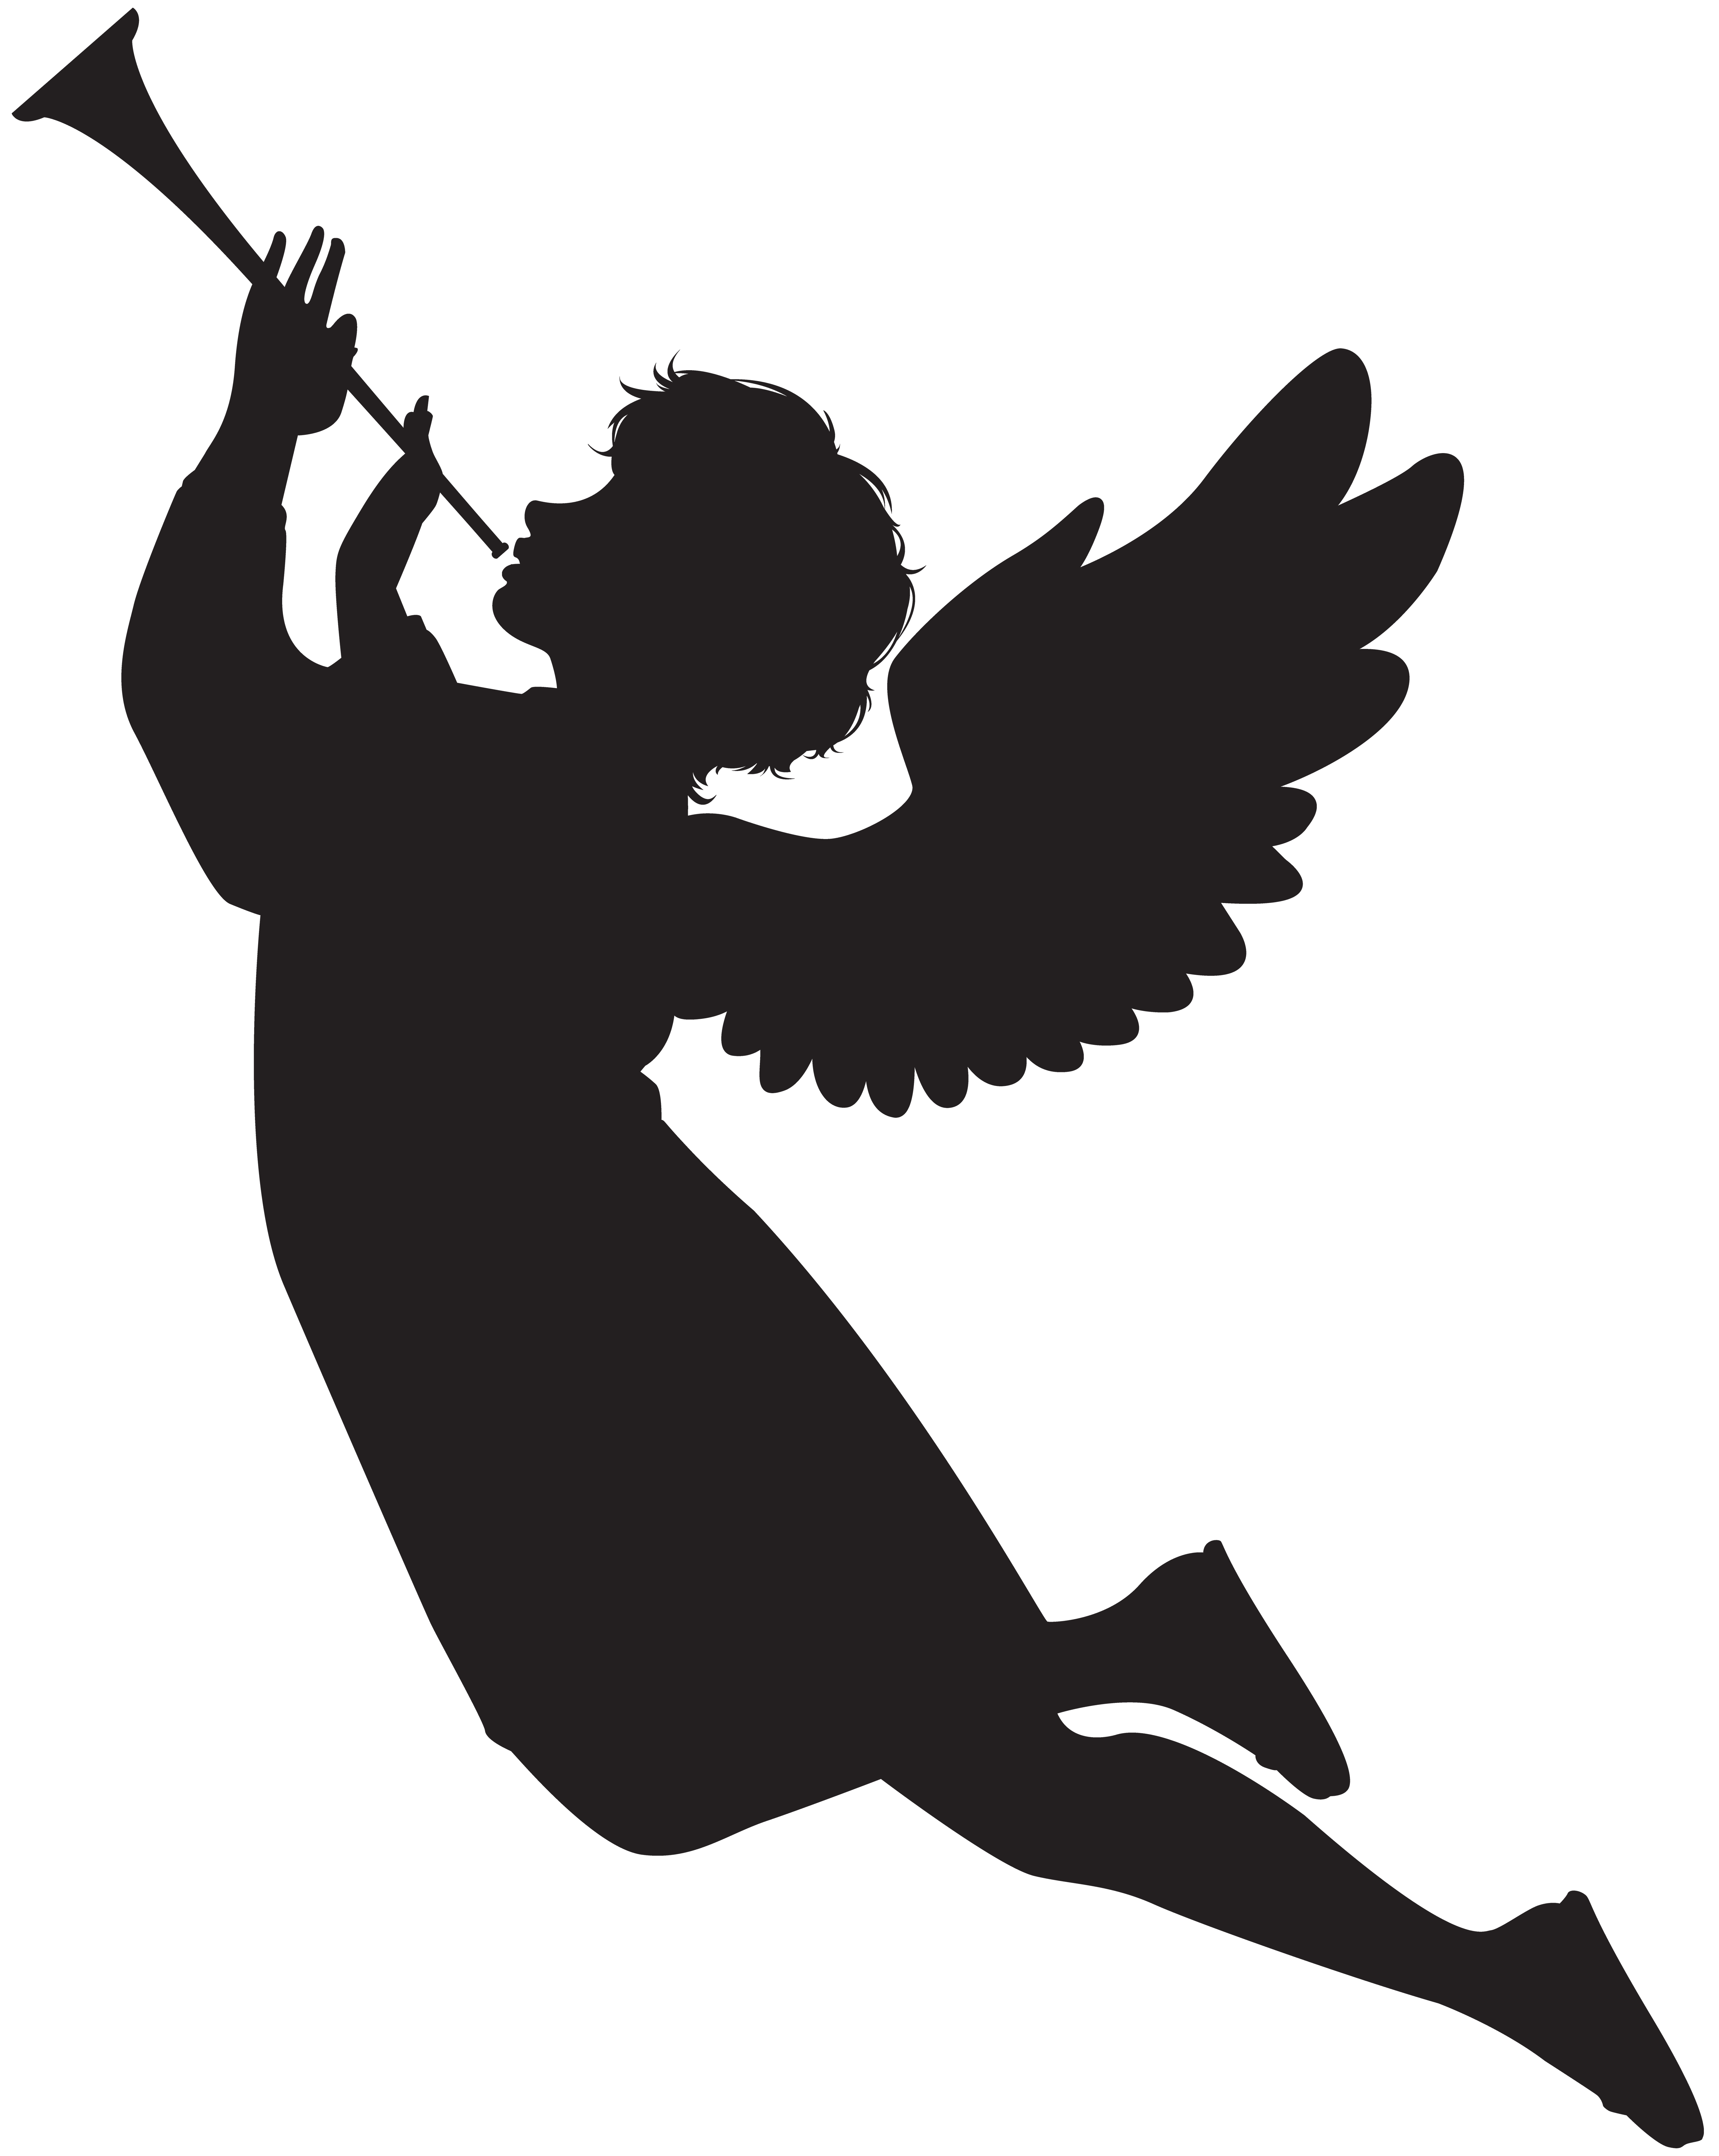 silhouette of angel clipart - Clipground